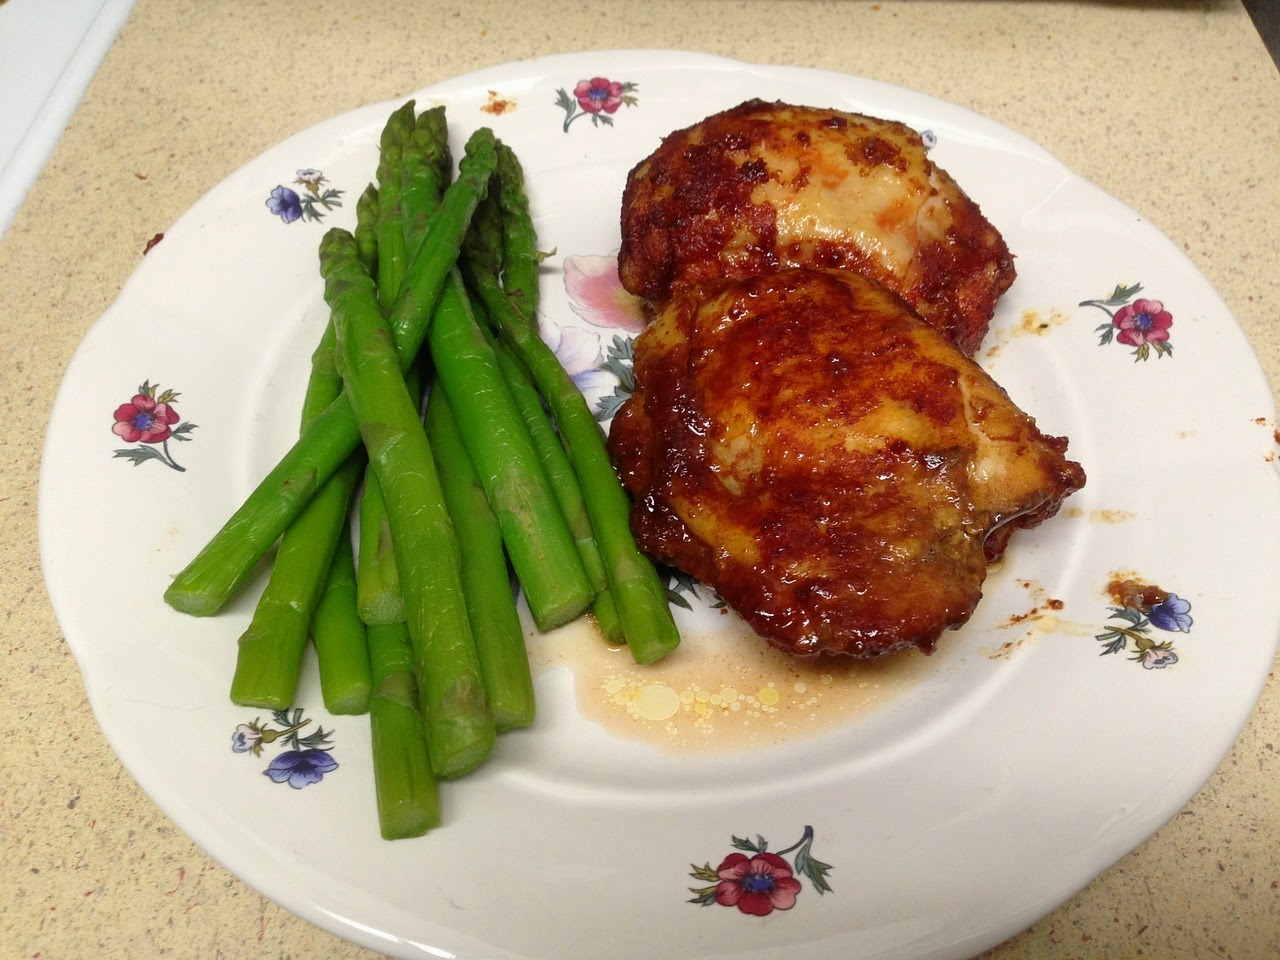 Baked Chicken with Asparagus